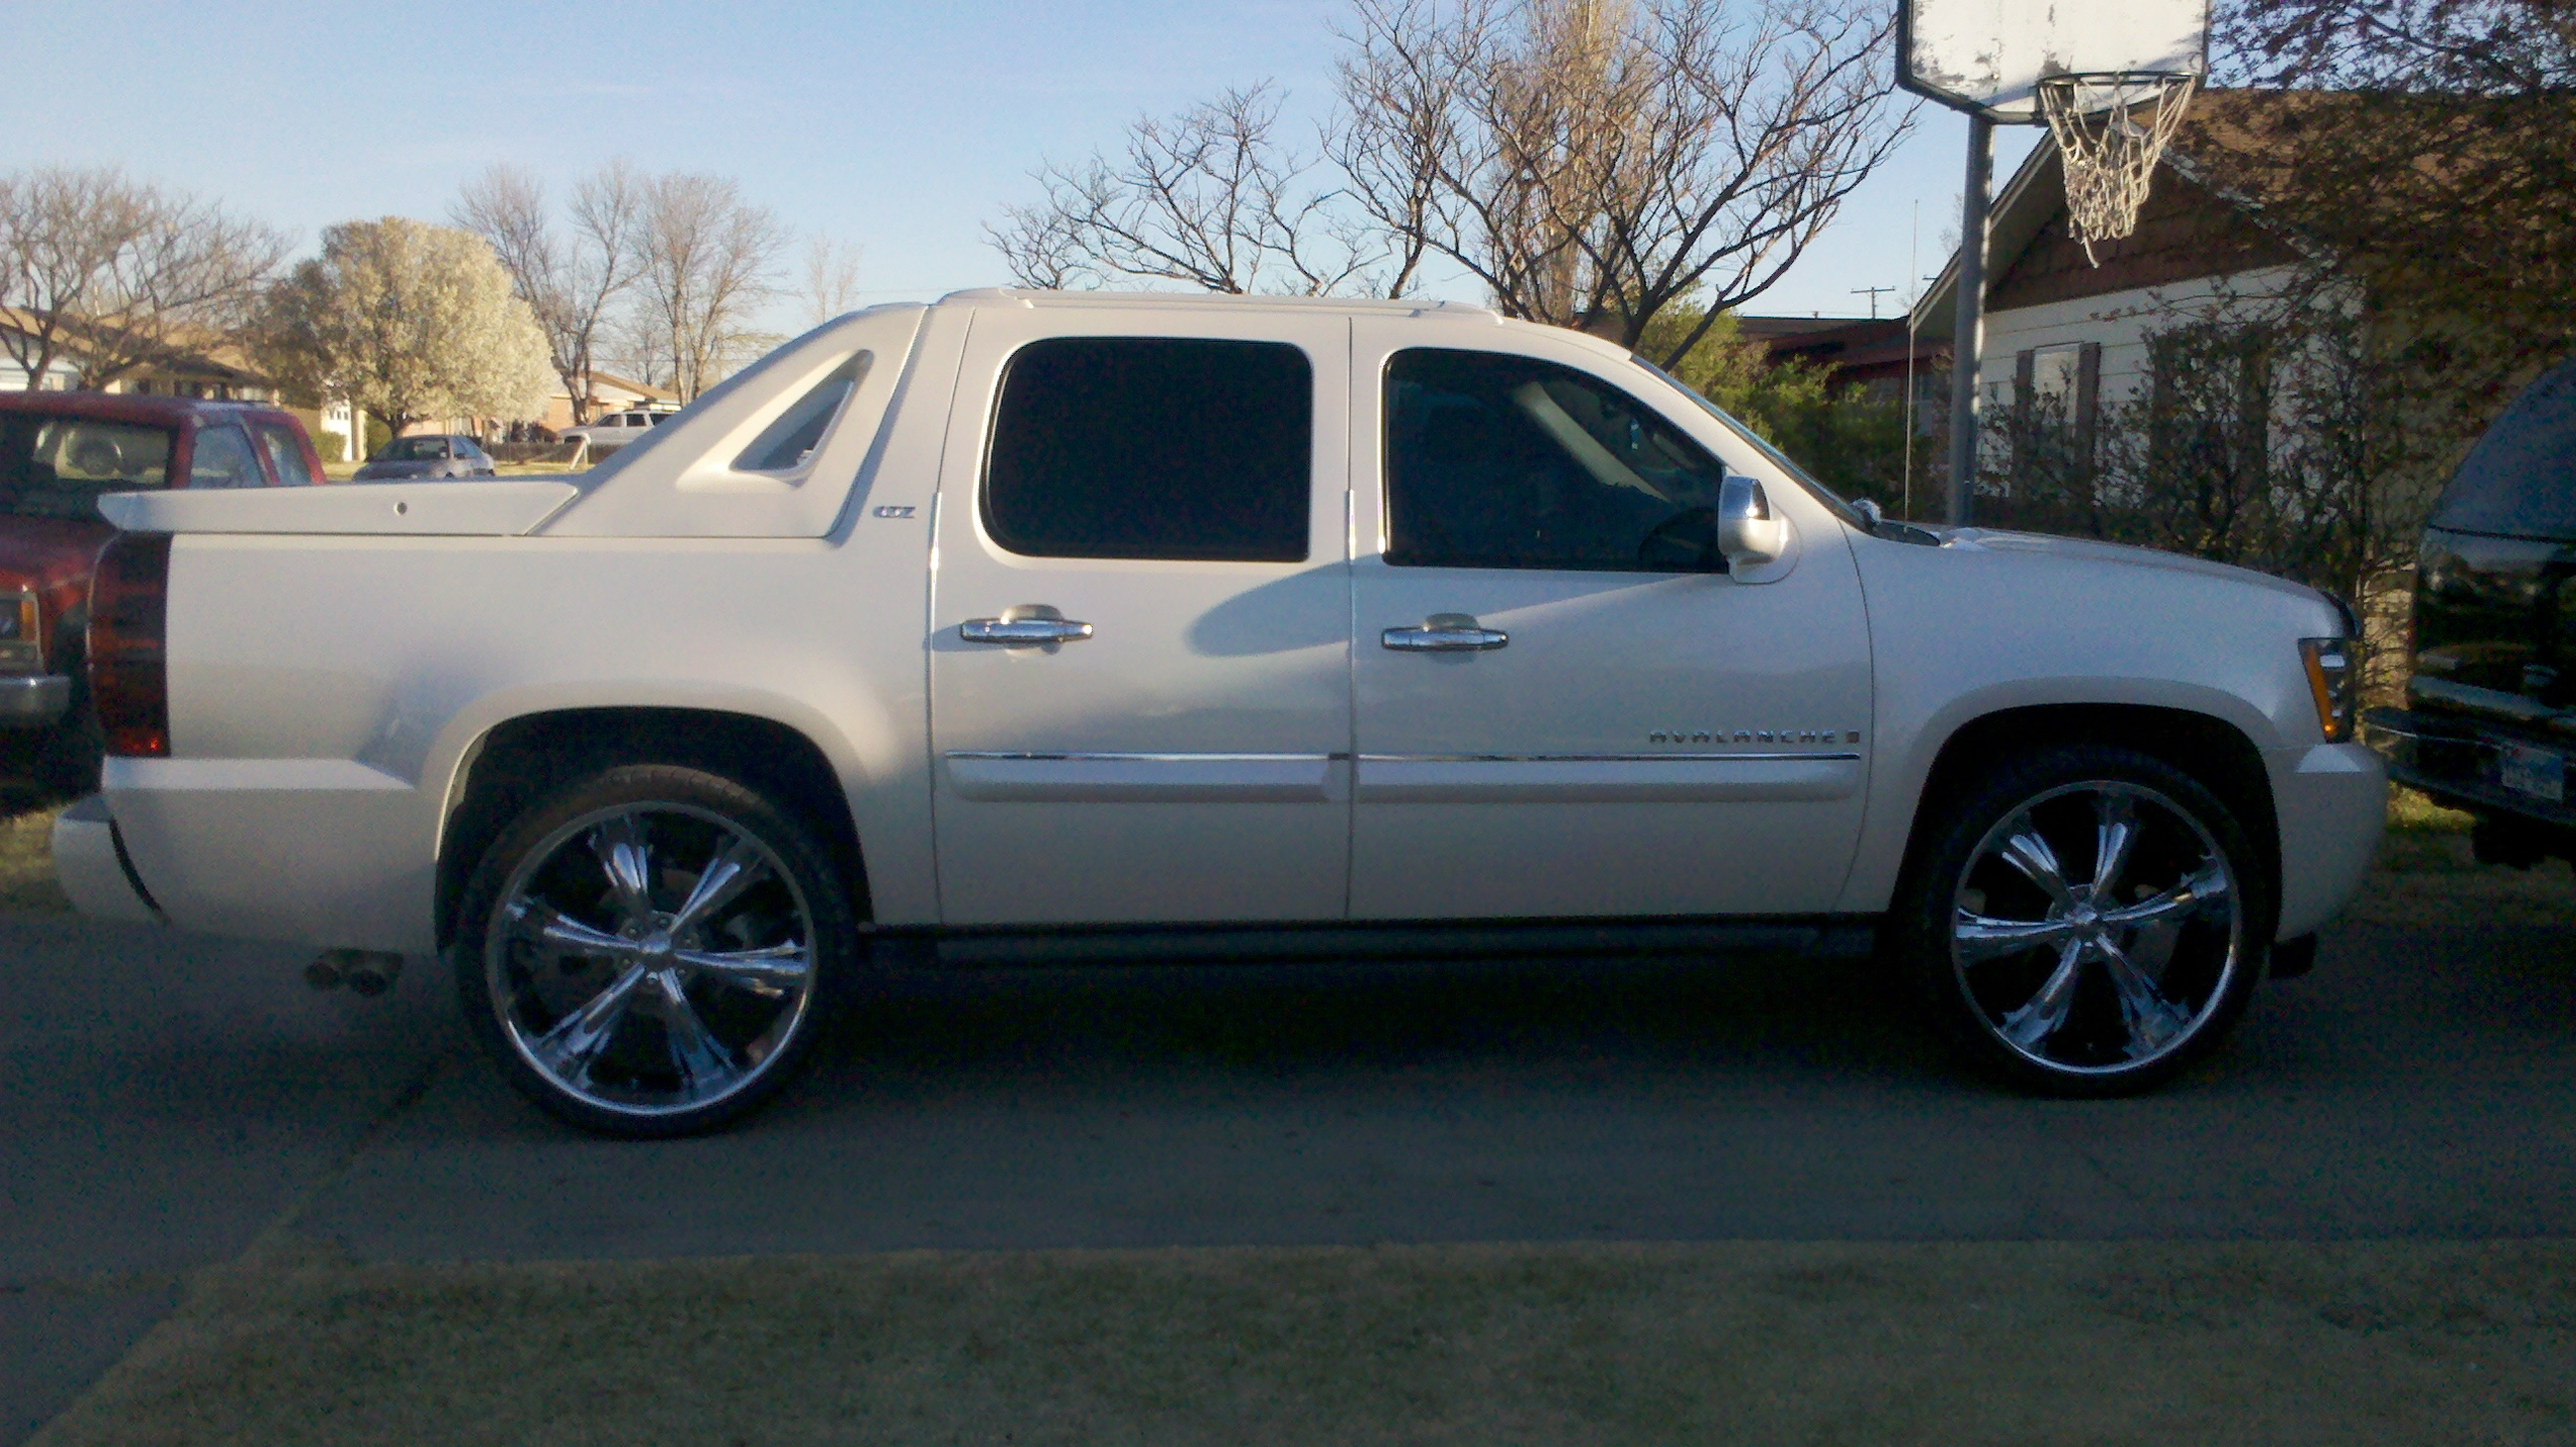 sergio44 2008 Chevrolet Avalanche 1500 Specs, Photos ...